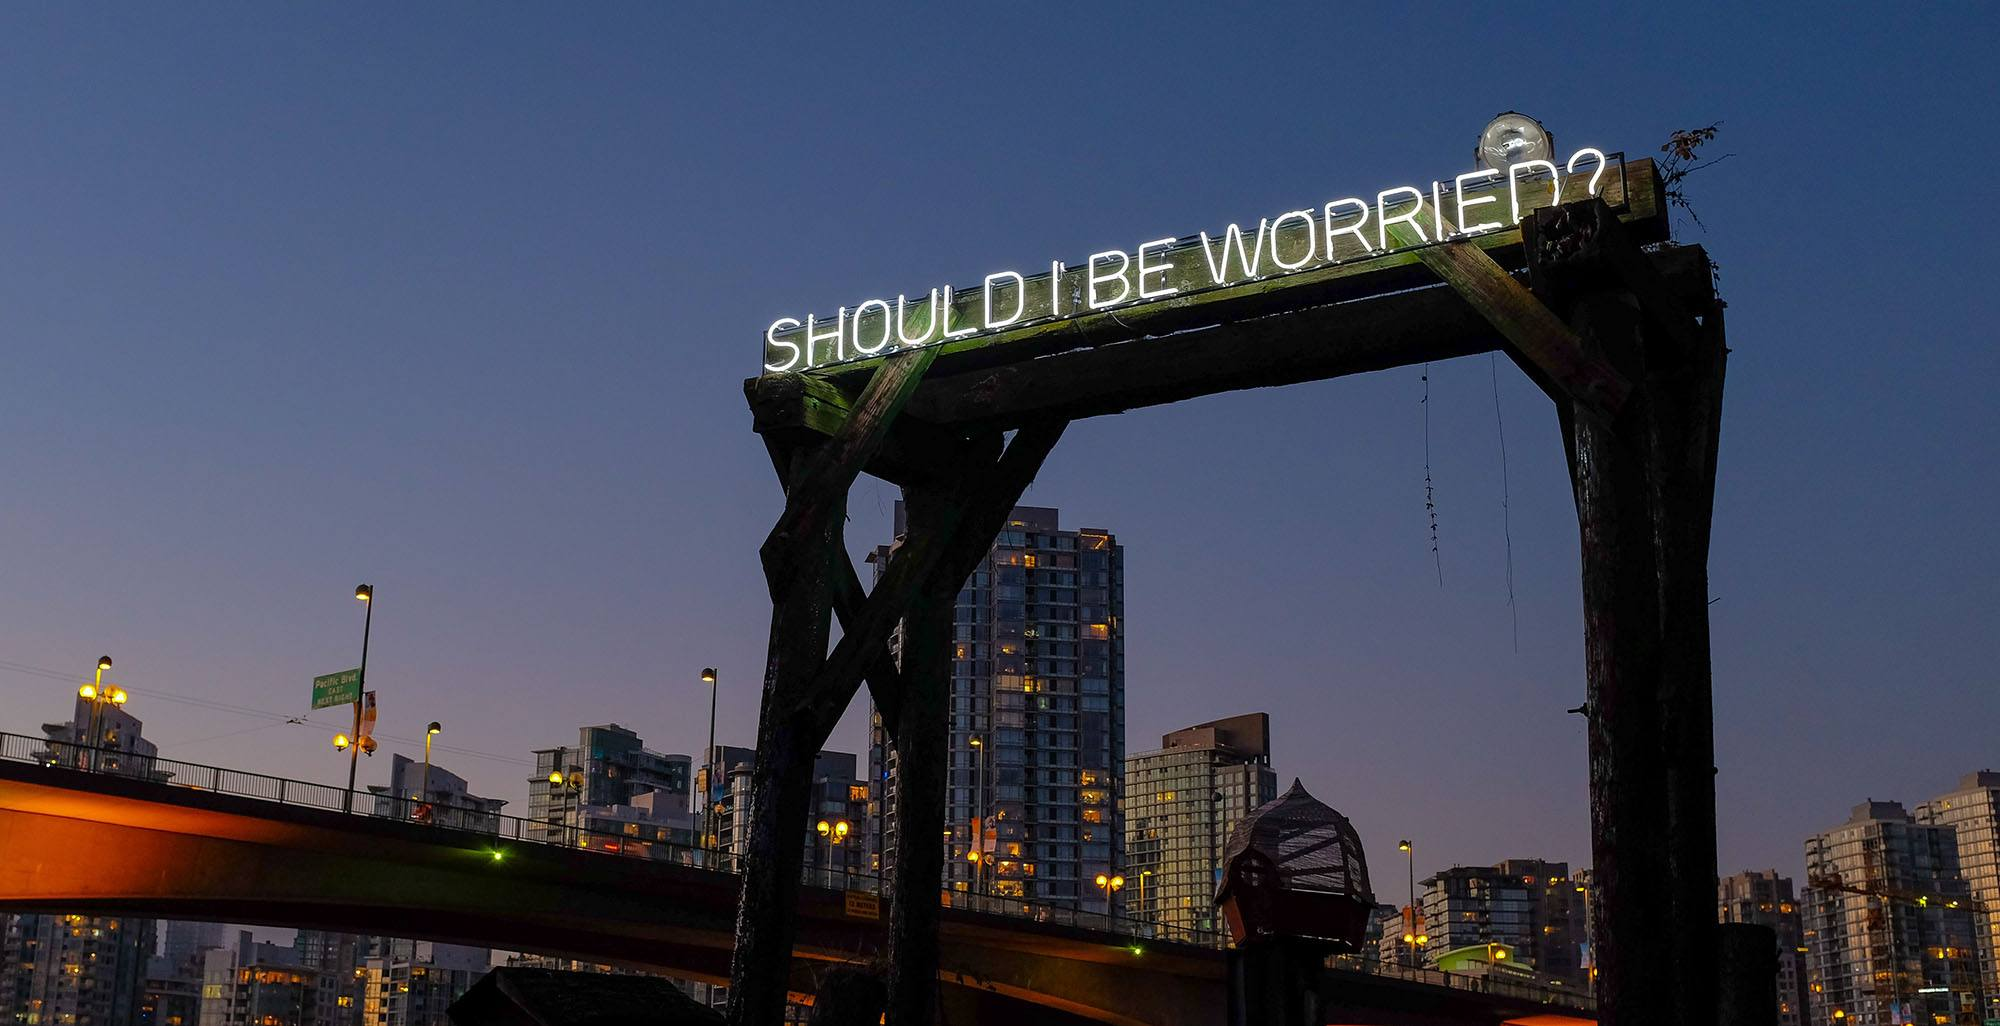 New 'Should I Be Worried?' neon artwork in Vancouver part of $115,000 program